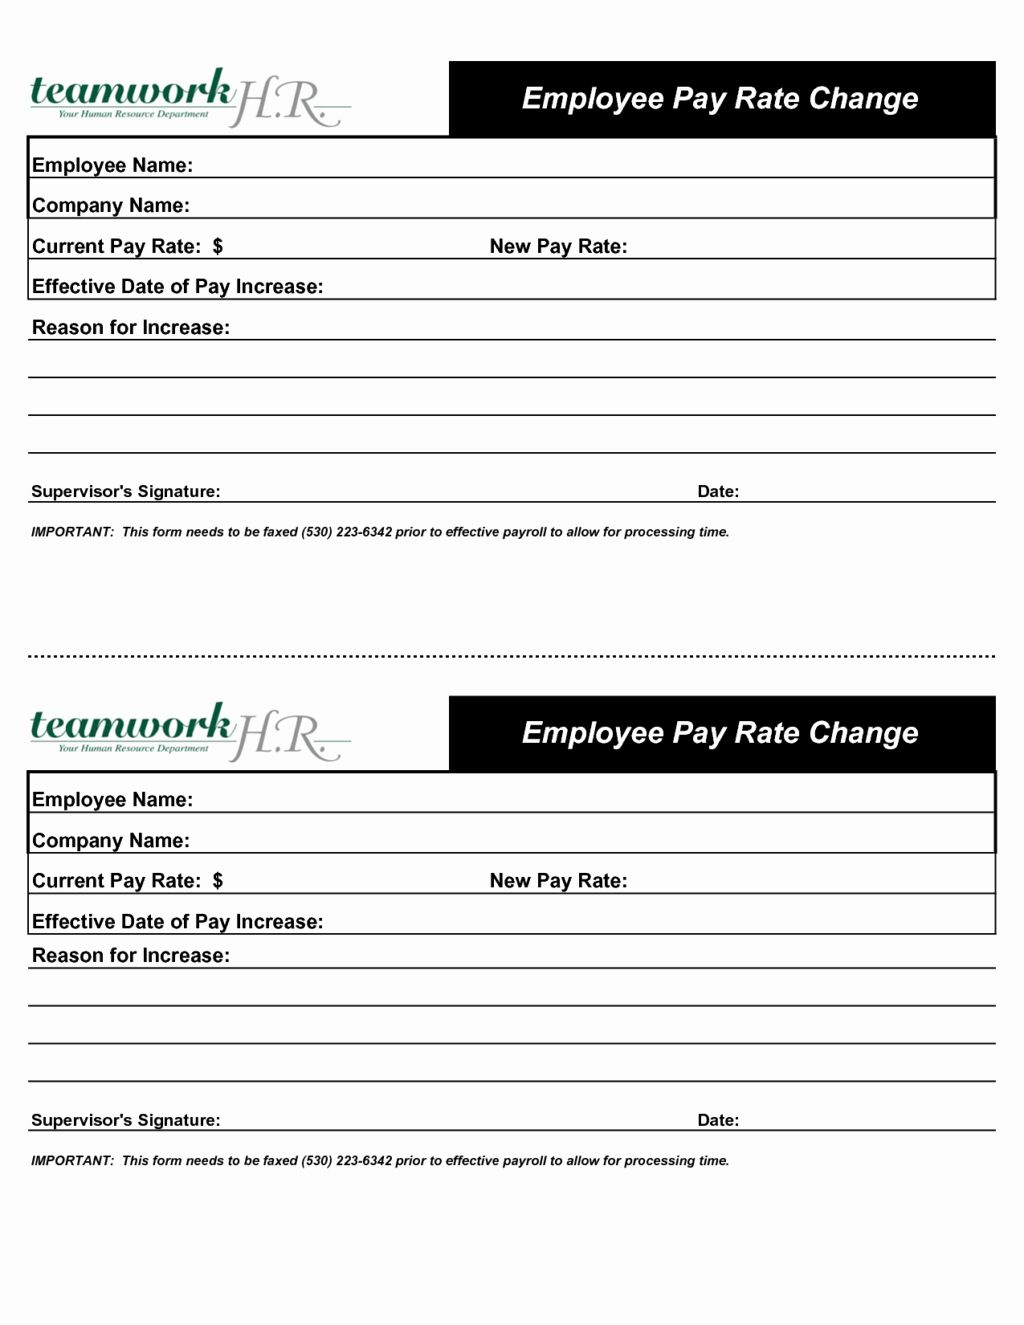 Salary Change Form Fresh Inspirational Employee Pay Rate Change Increase Form Good Essay School Newsletter Template Cover Letter Sample